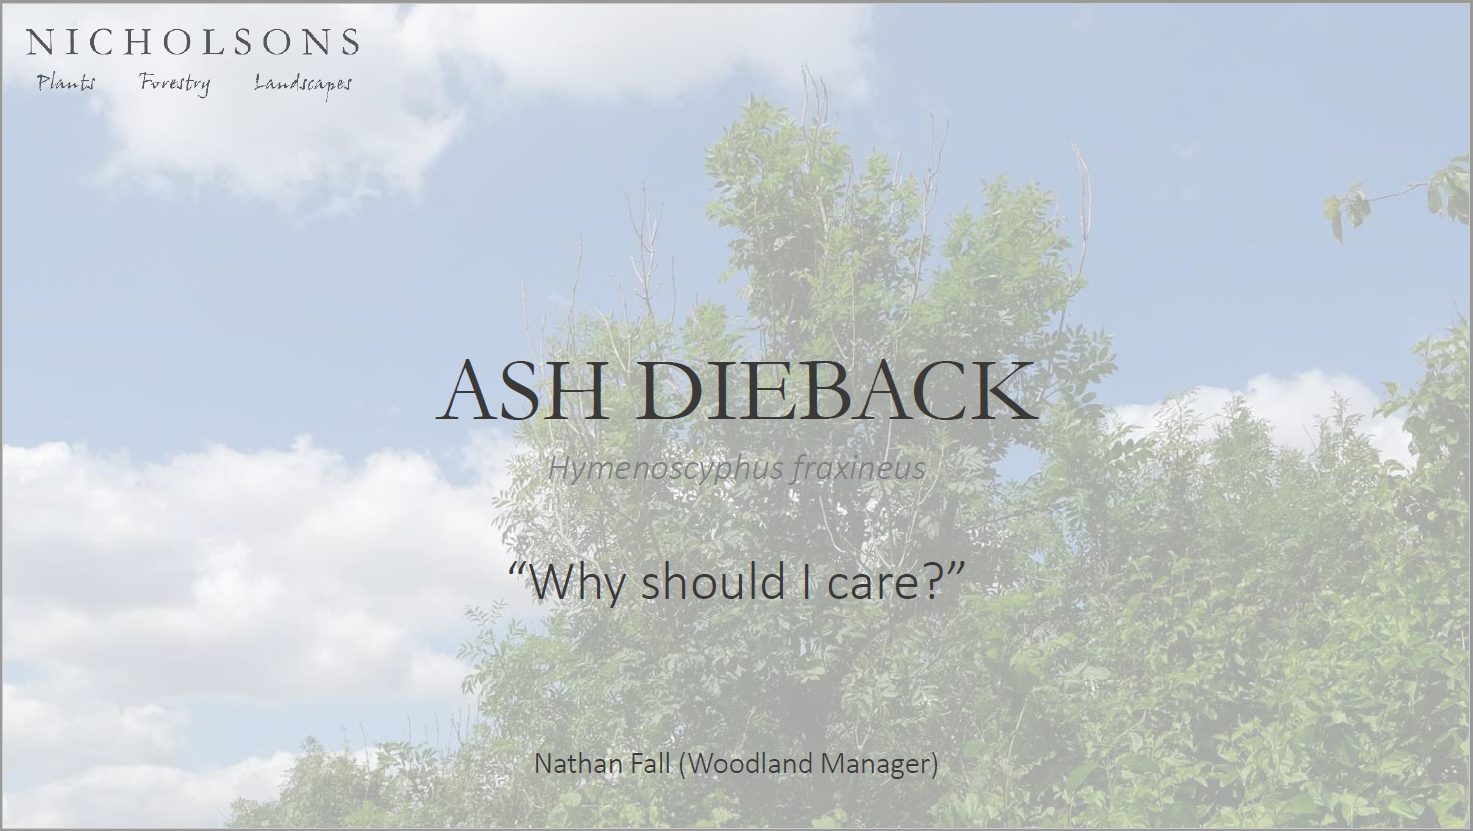 Ash Dieback: Why Should I Care?